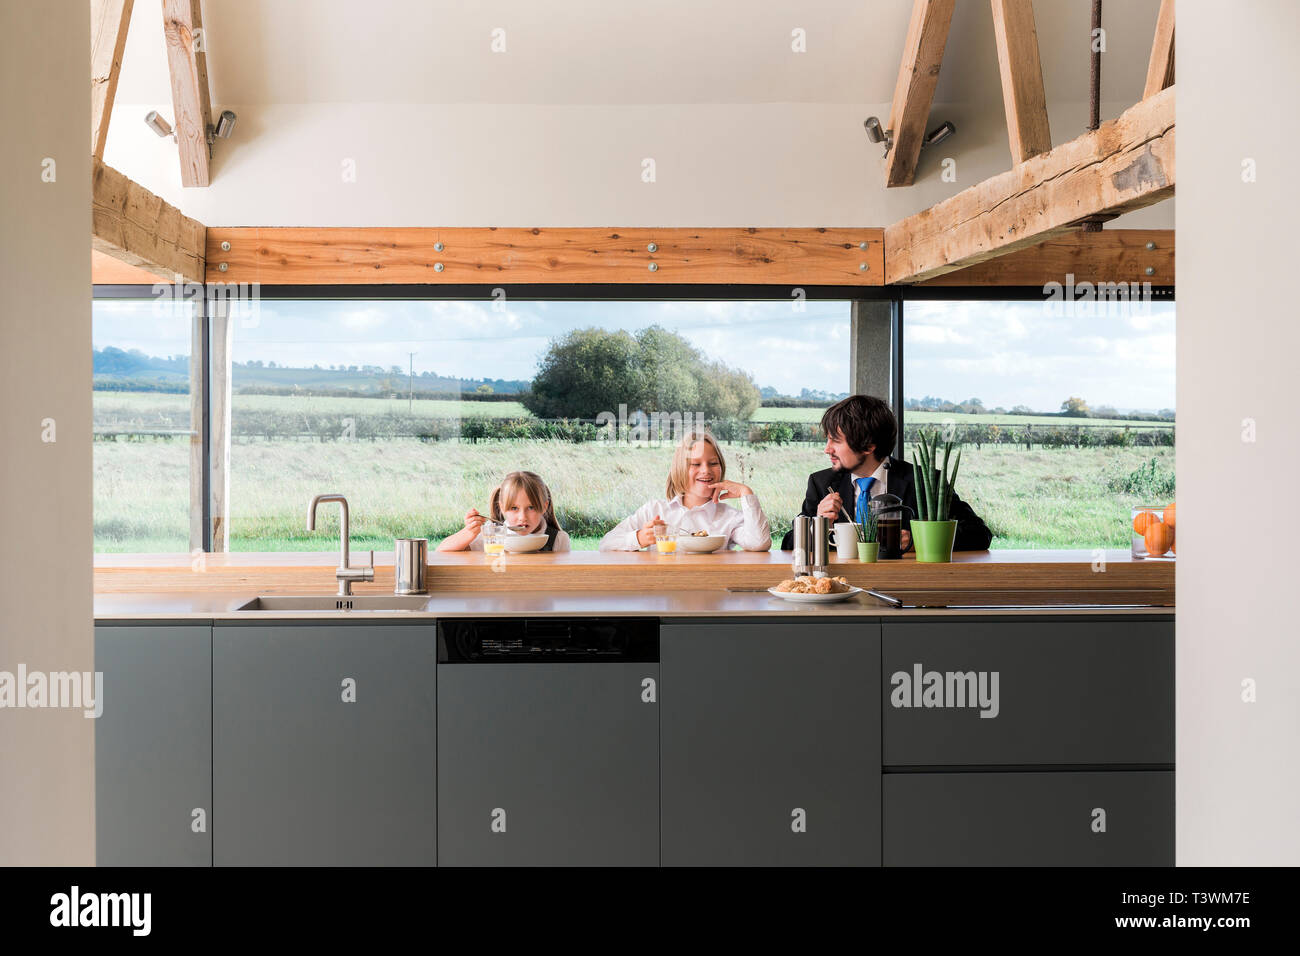 Caucasian father and children eating breakfast in kitchen - Stock Image